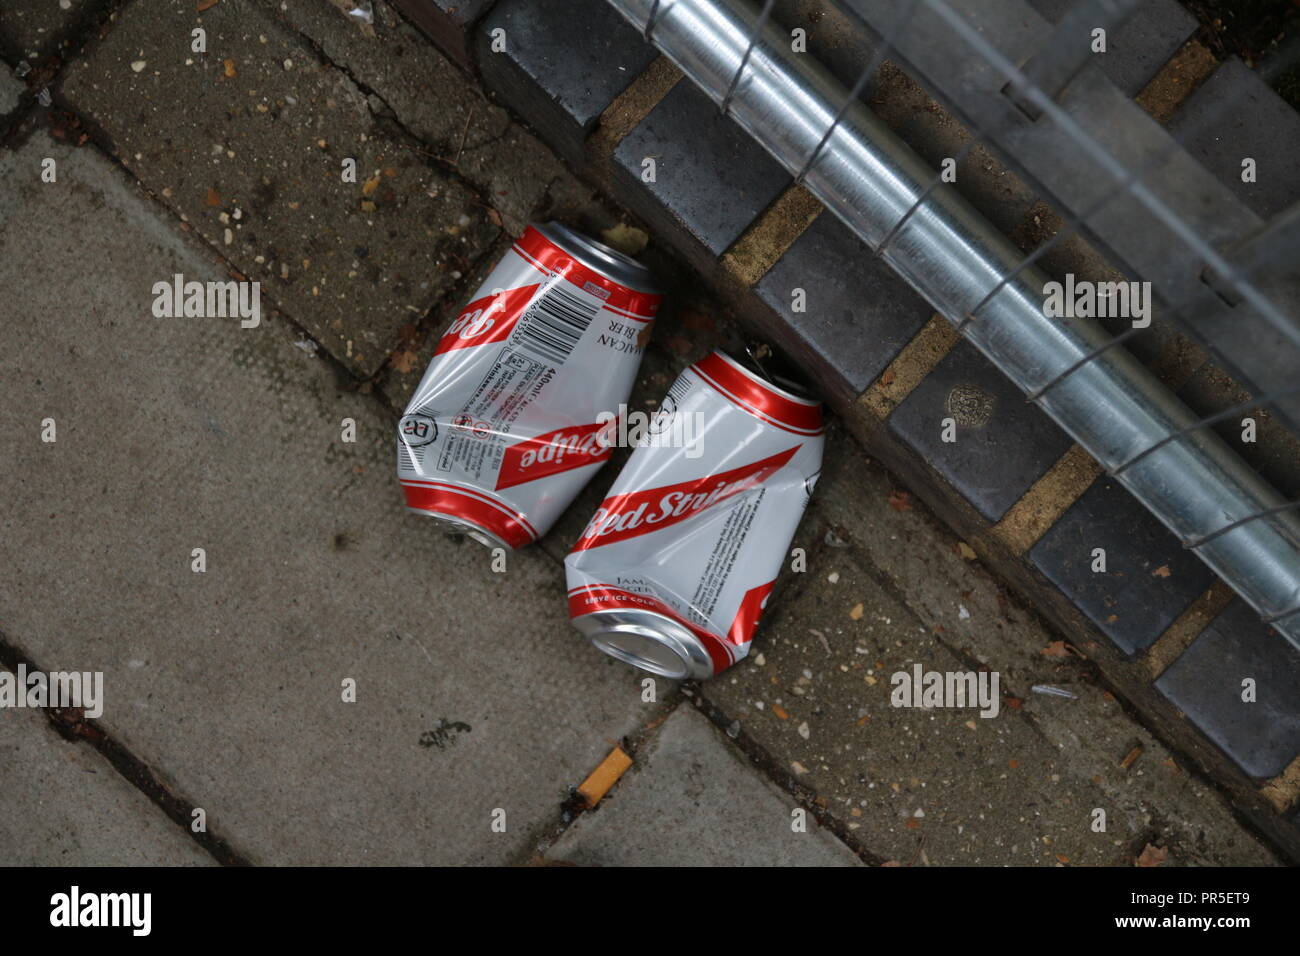 London, UK - August 27, 2018: Red stripes beer cans after party morning - Stock Image